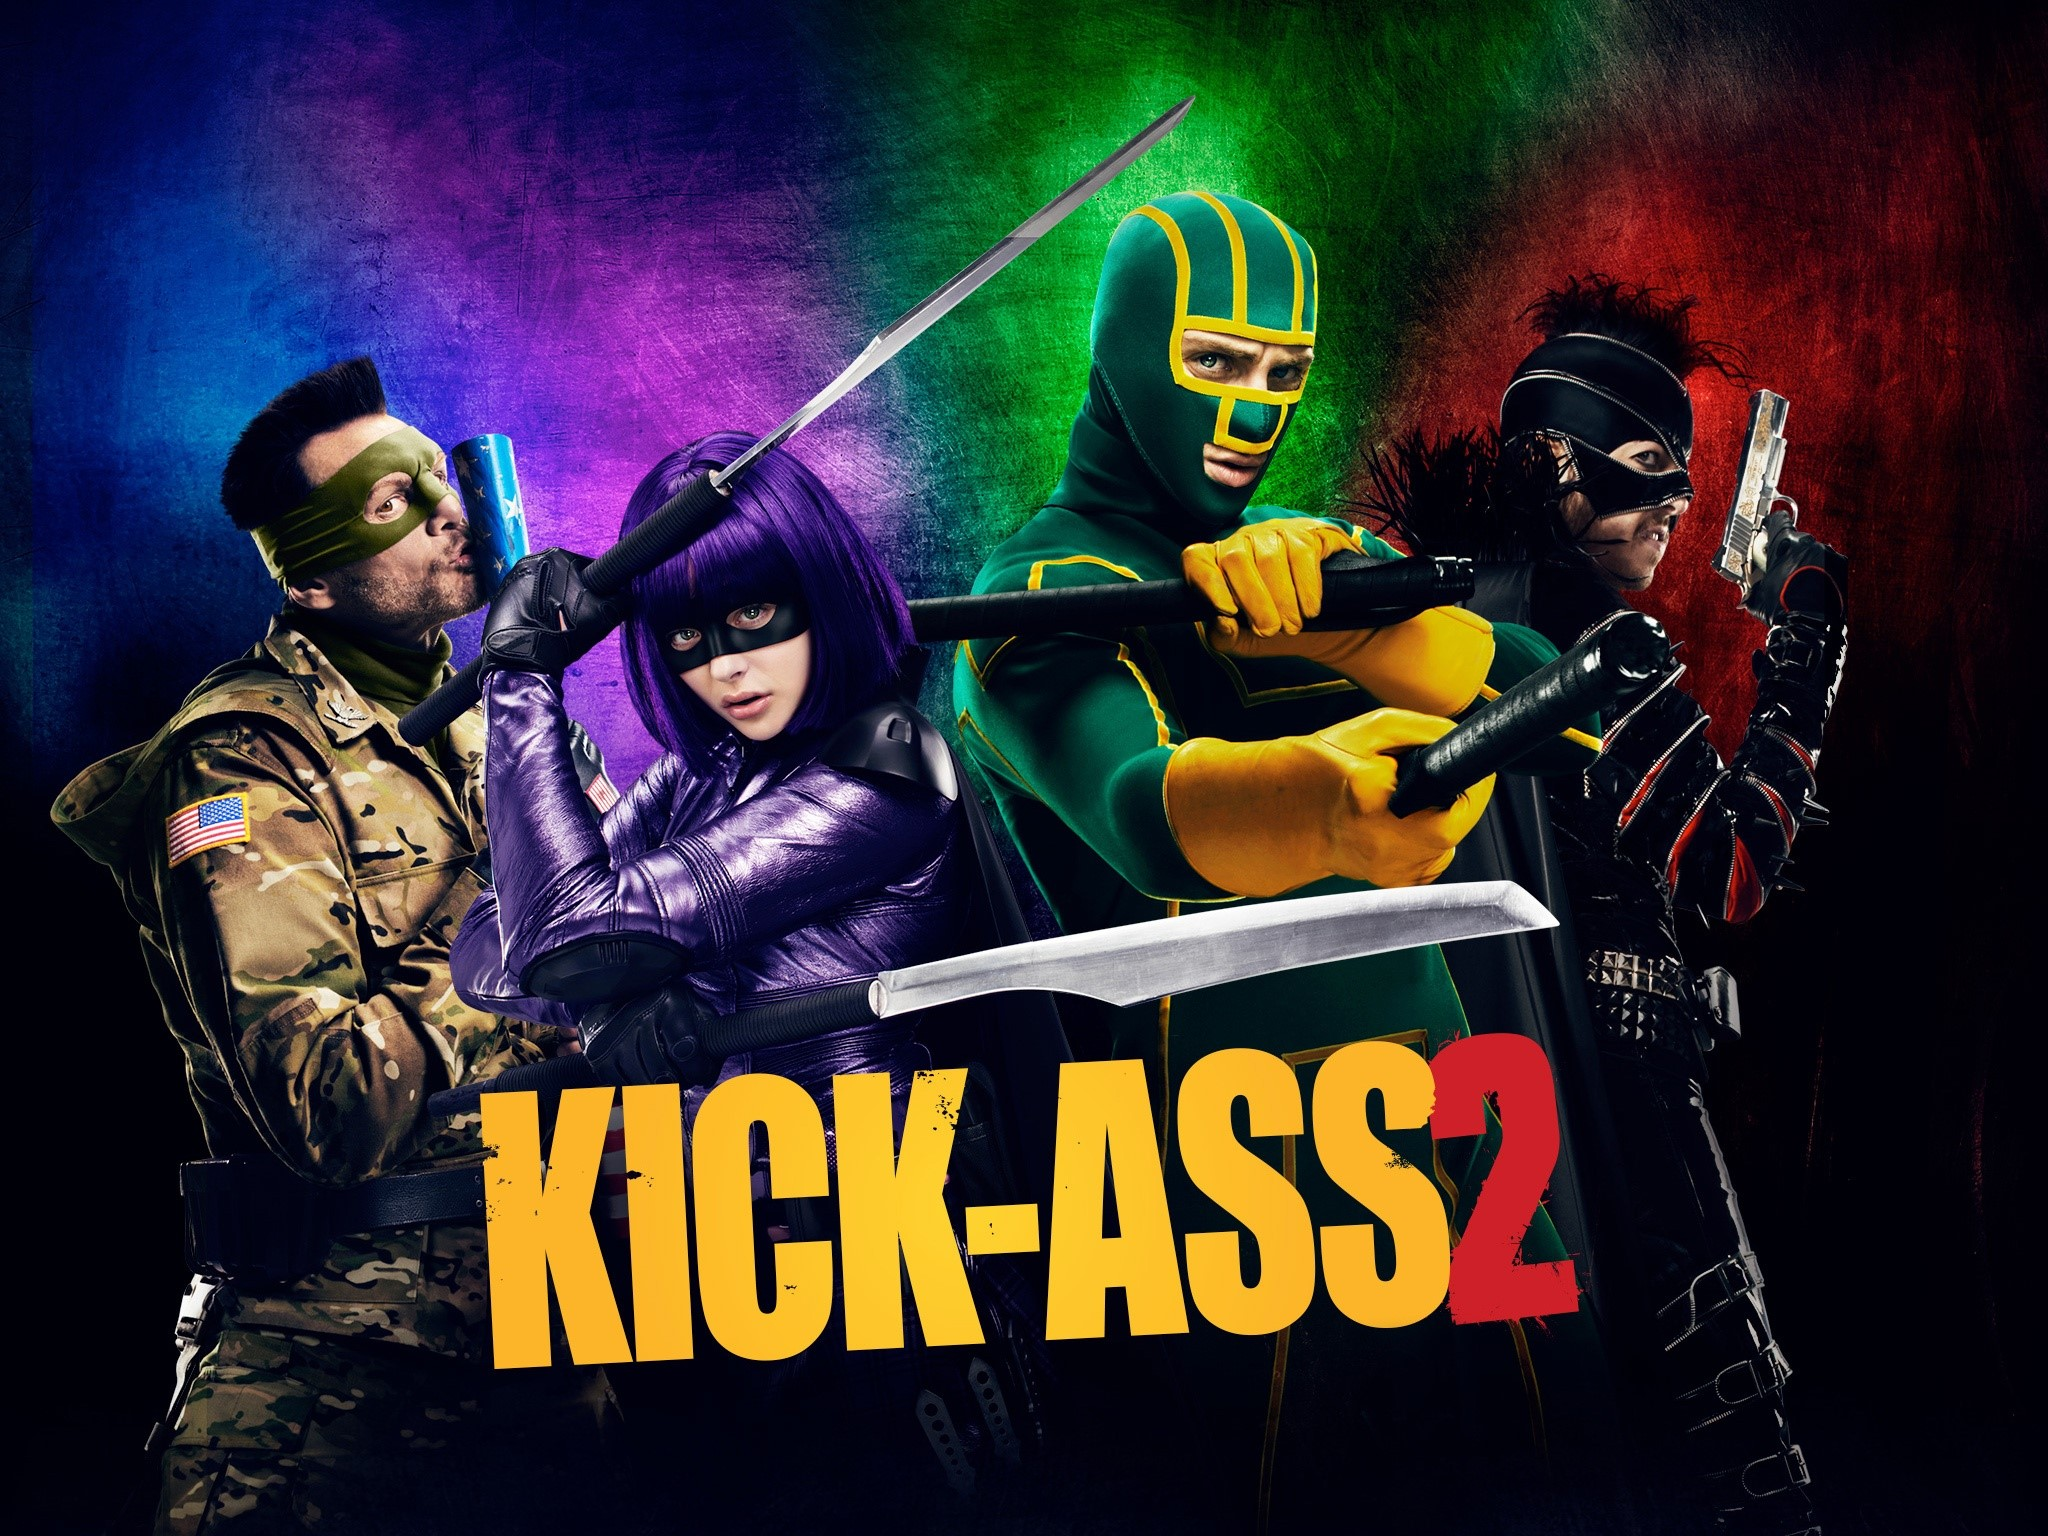 Wallpaper Película Kick Ass 2 Images